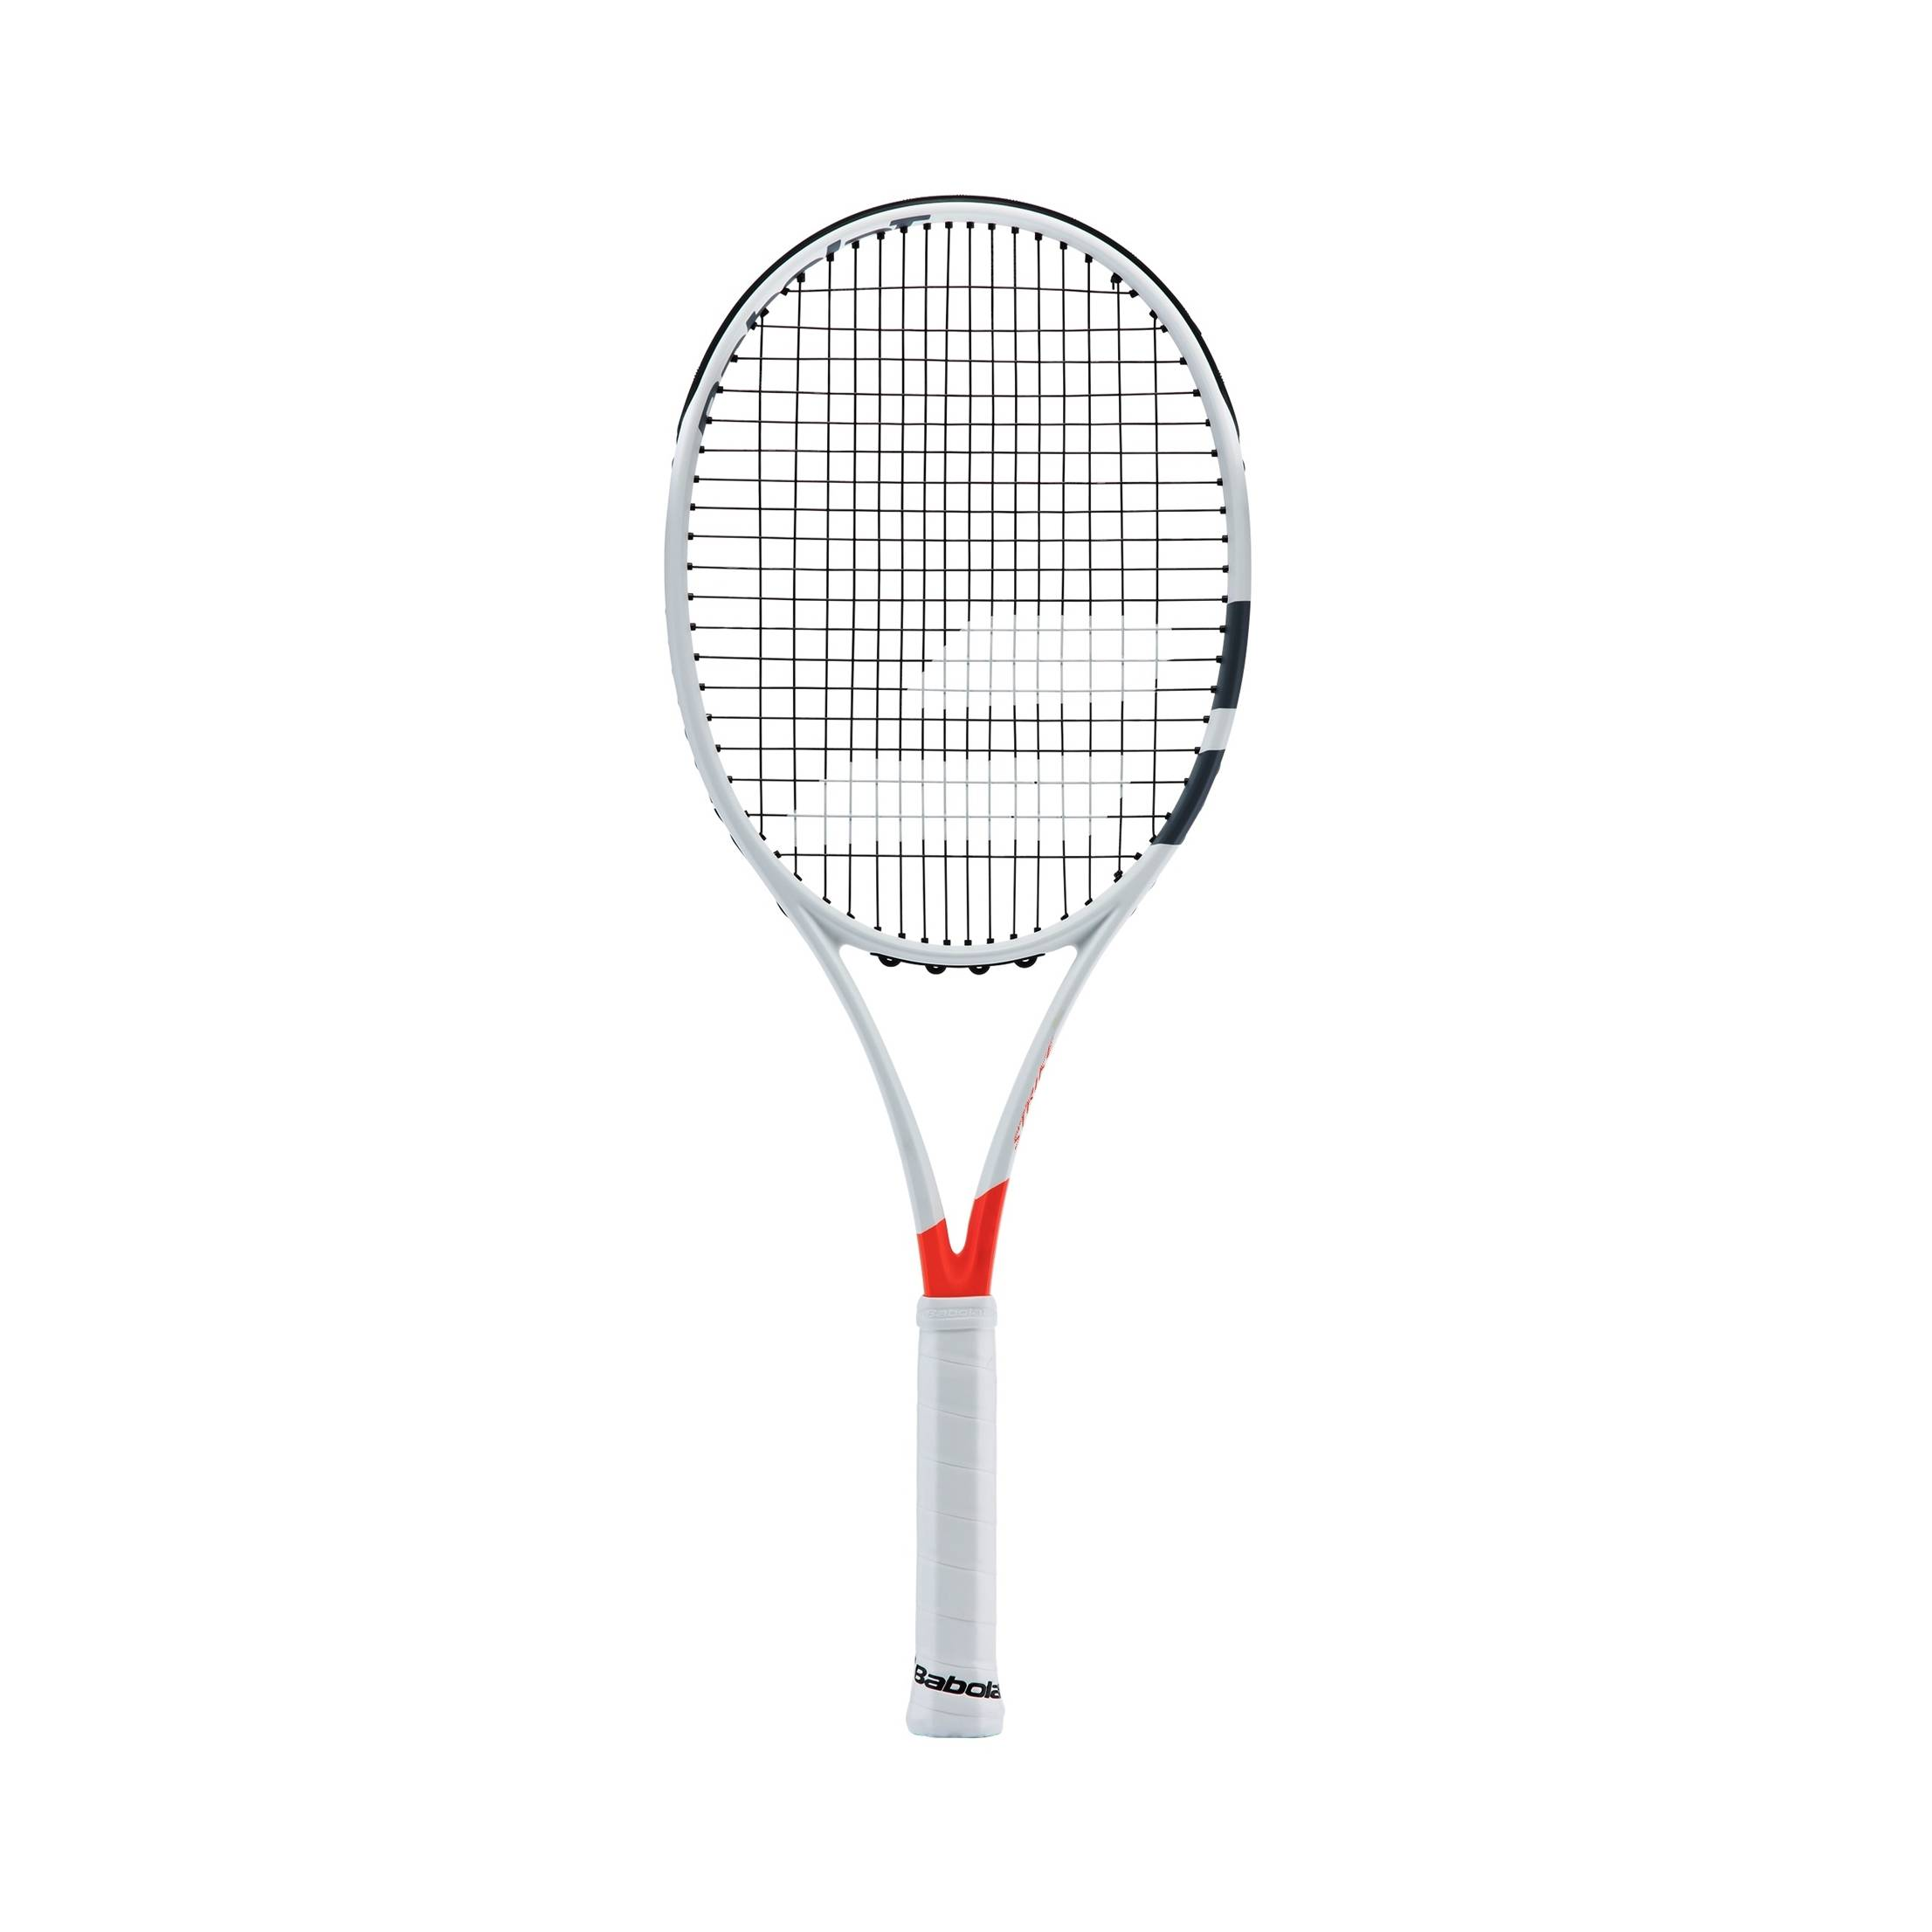 Babolat Pure Strike 16x19 (Project One7) 1 (4)